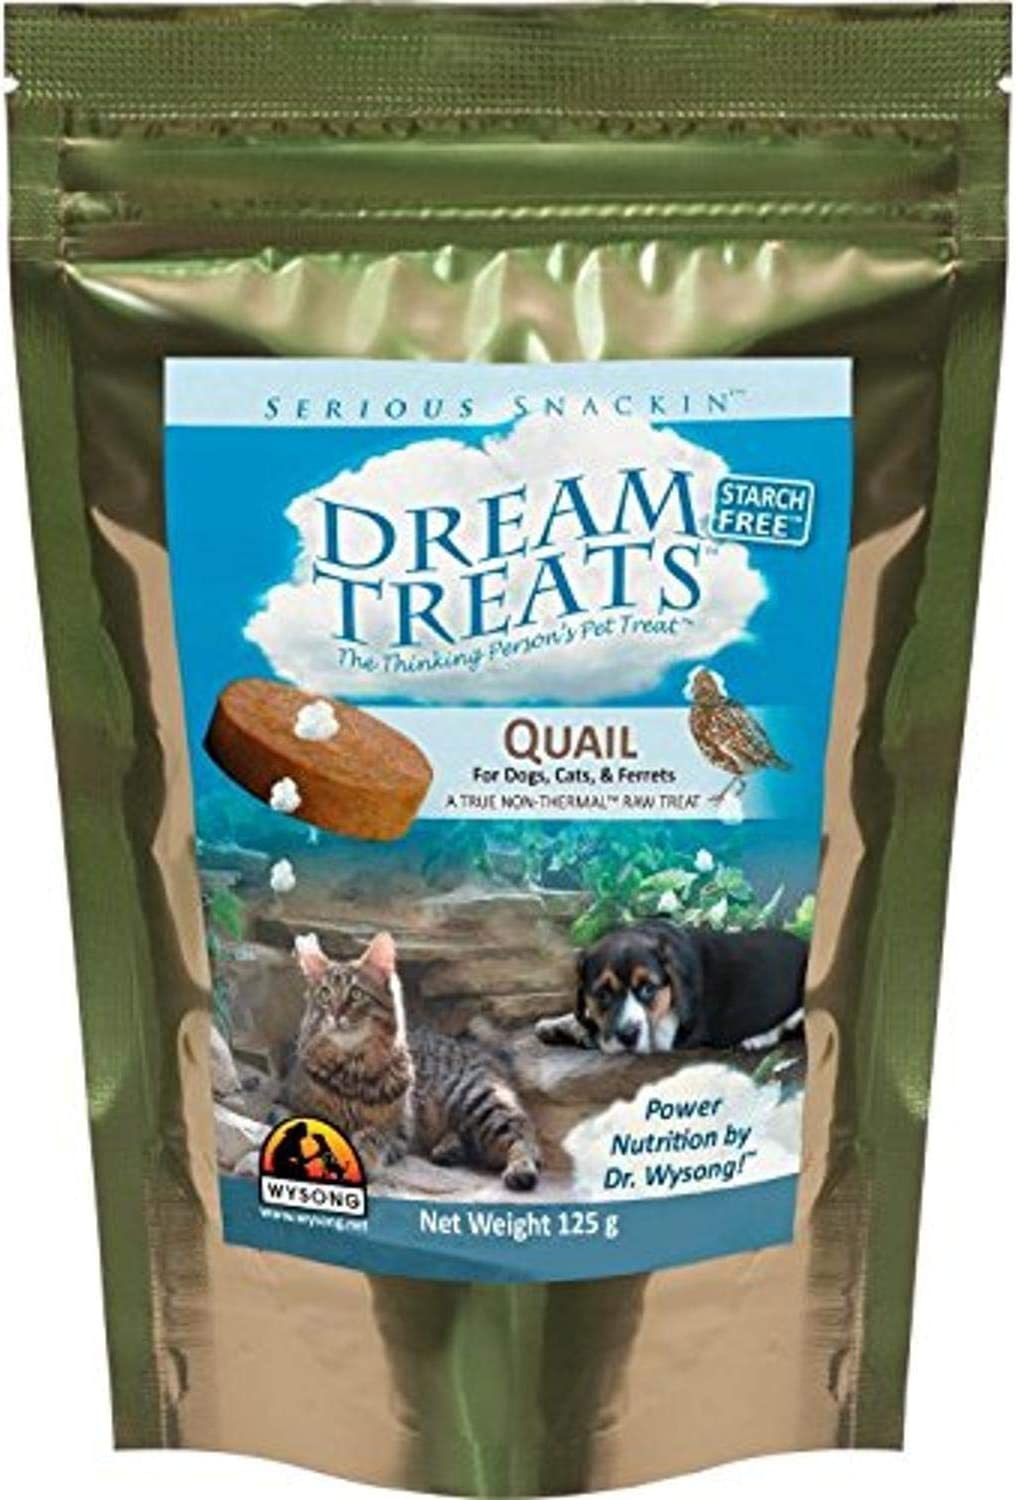 Wysong Dream Treats For Dogs/Cats/Ferrets - Raw Food - 4.9 Ounce Bag